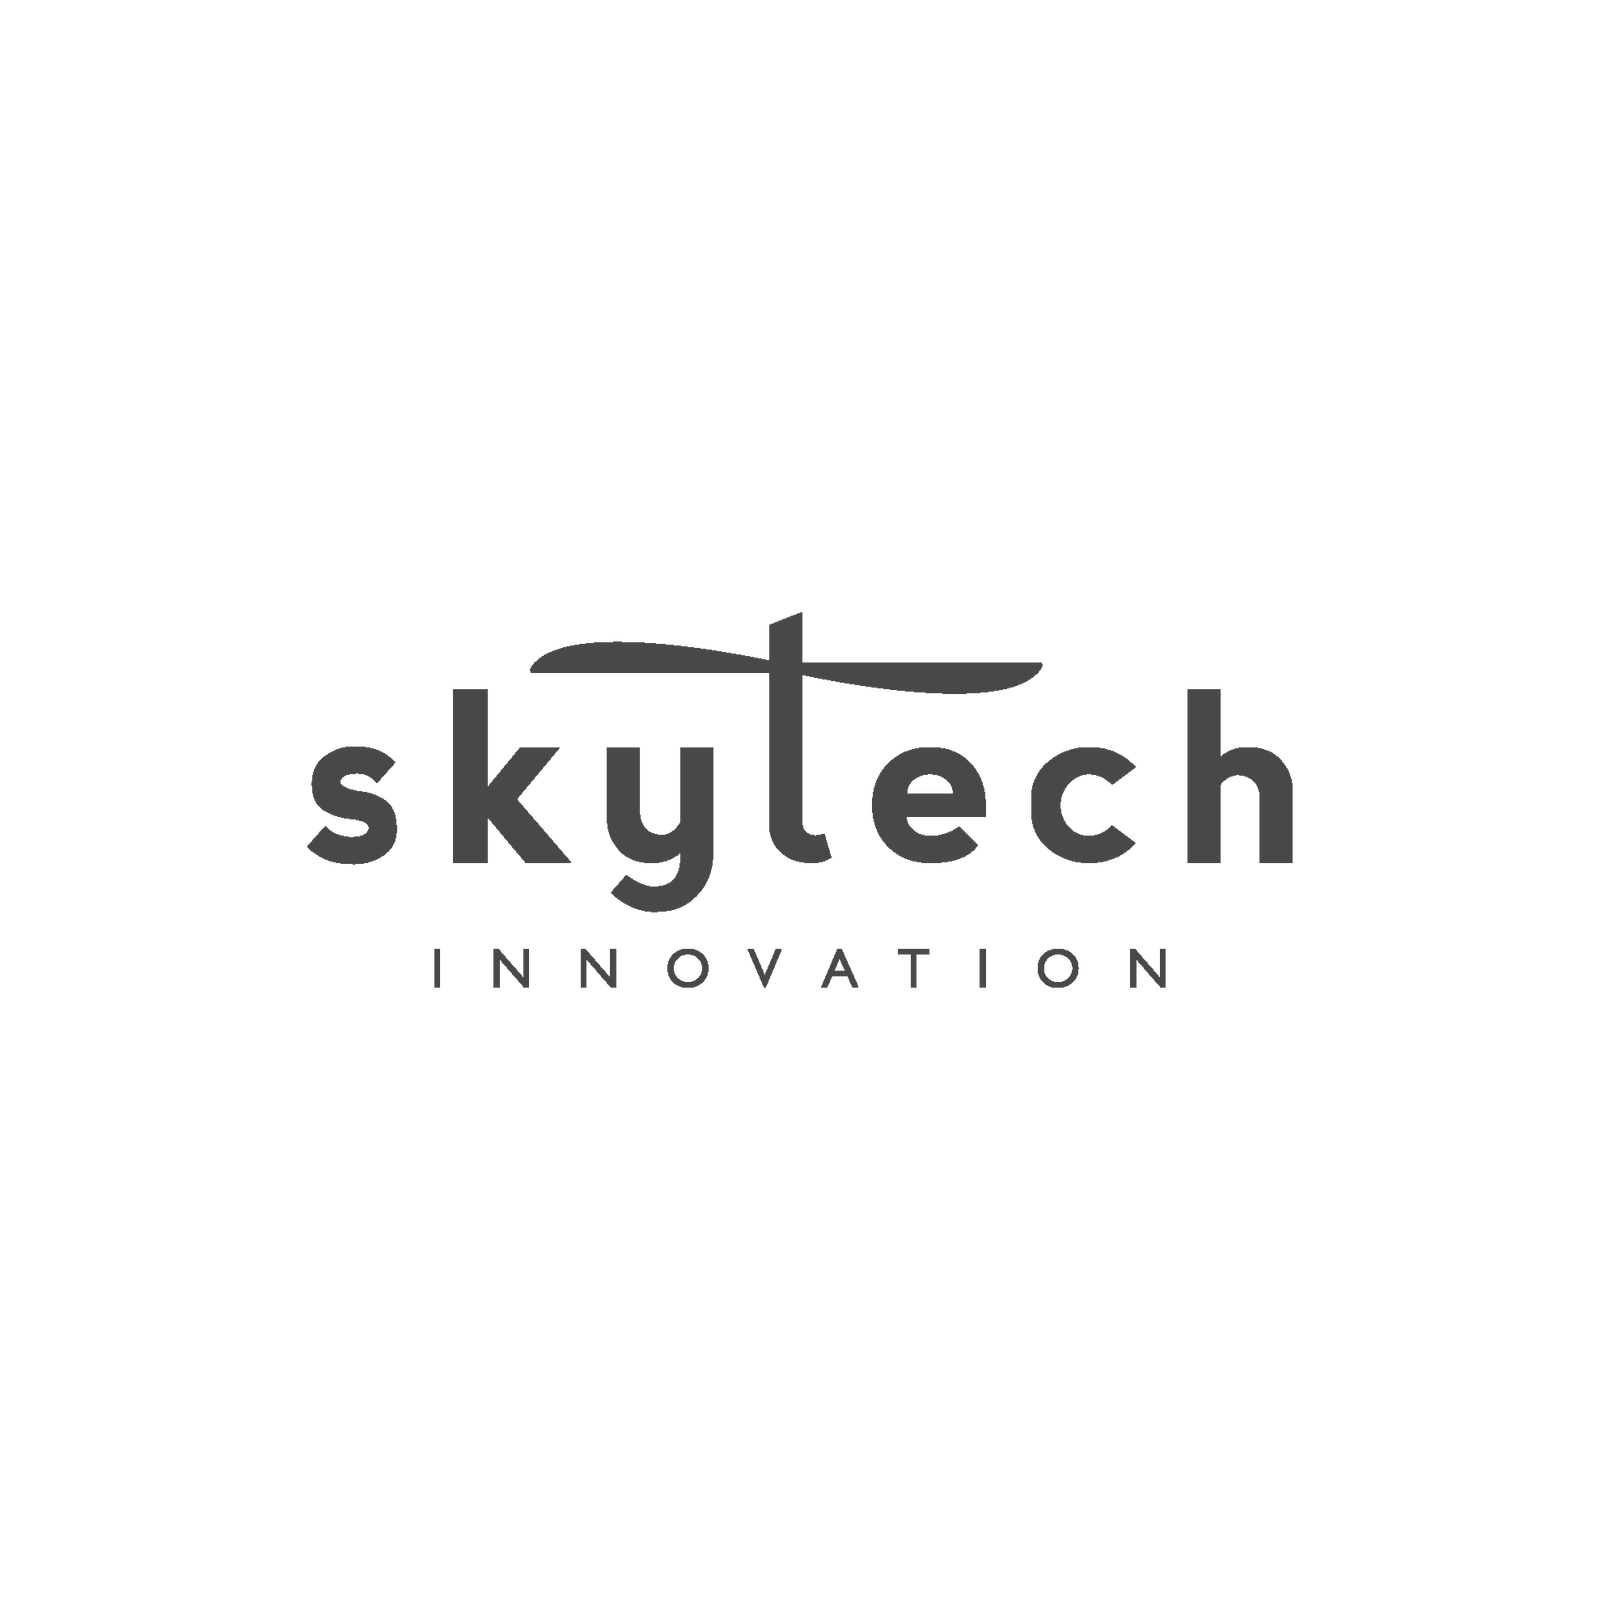 Skytech Innovation Pty Ltd Aus